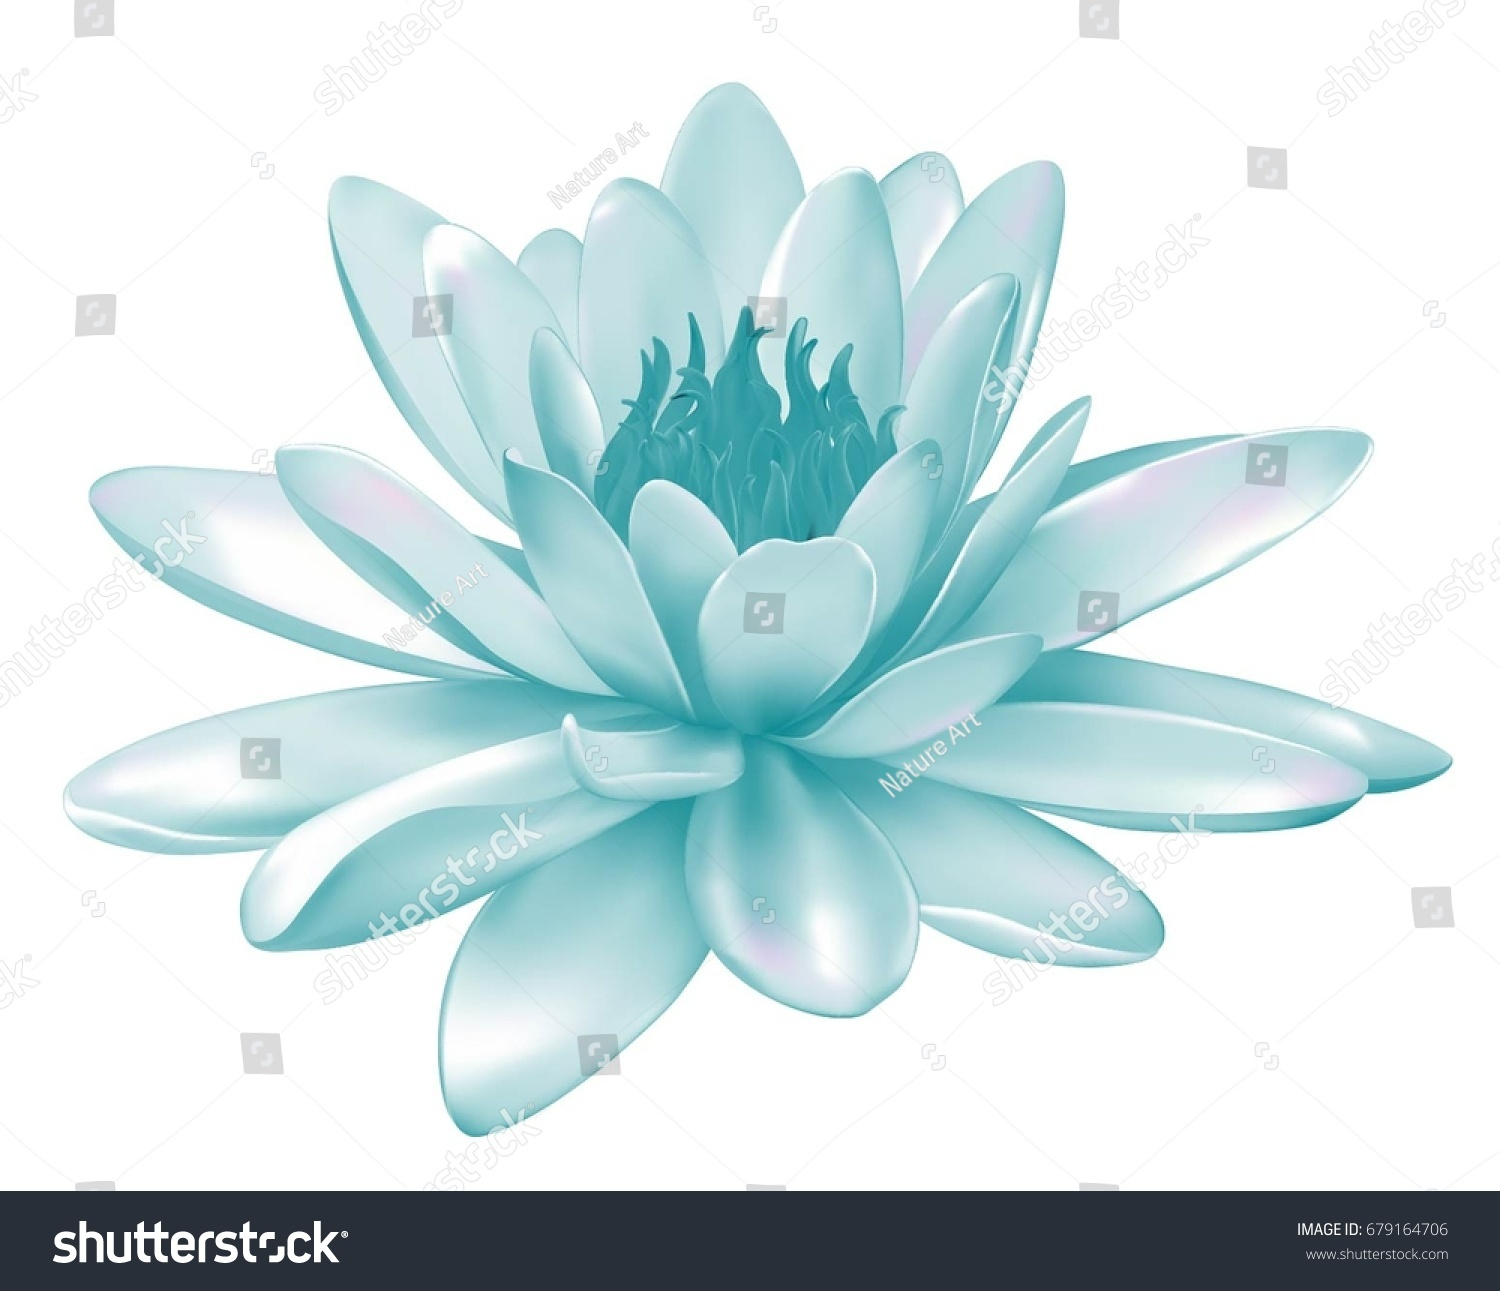 Vector Realistic Illustration Pastel Blue Turquoise Stock Vector